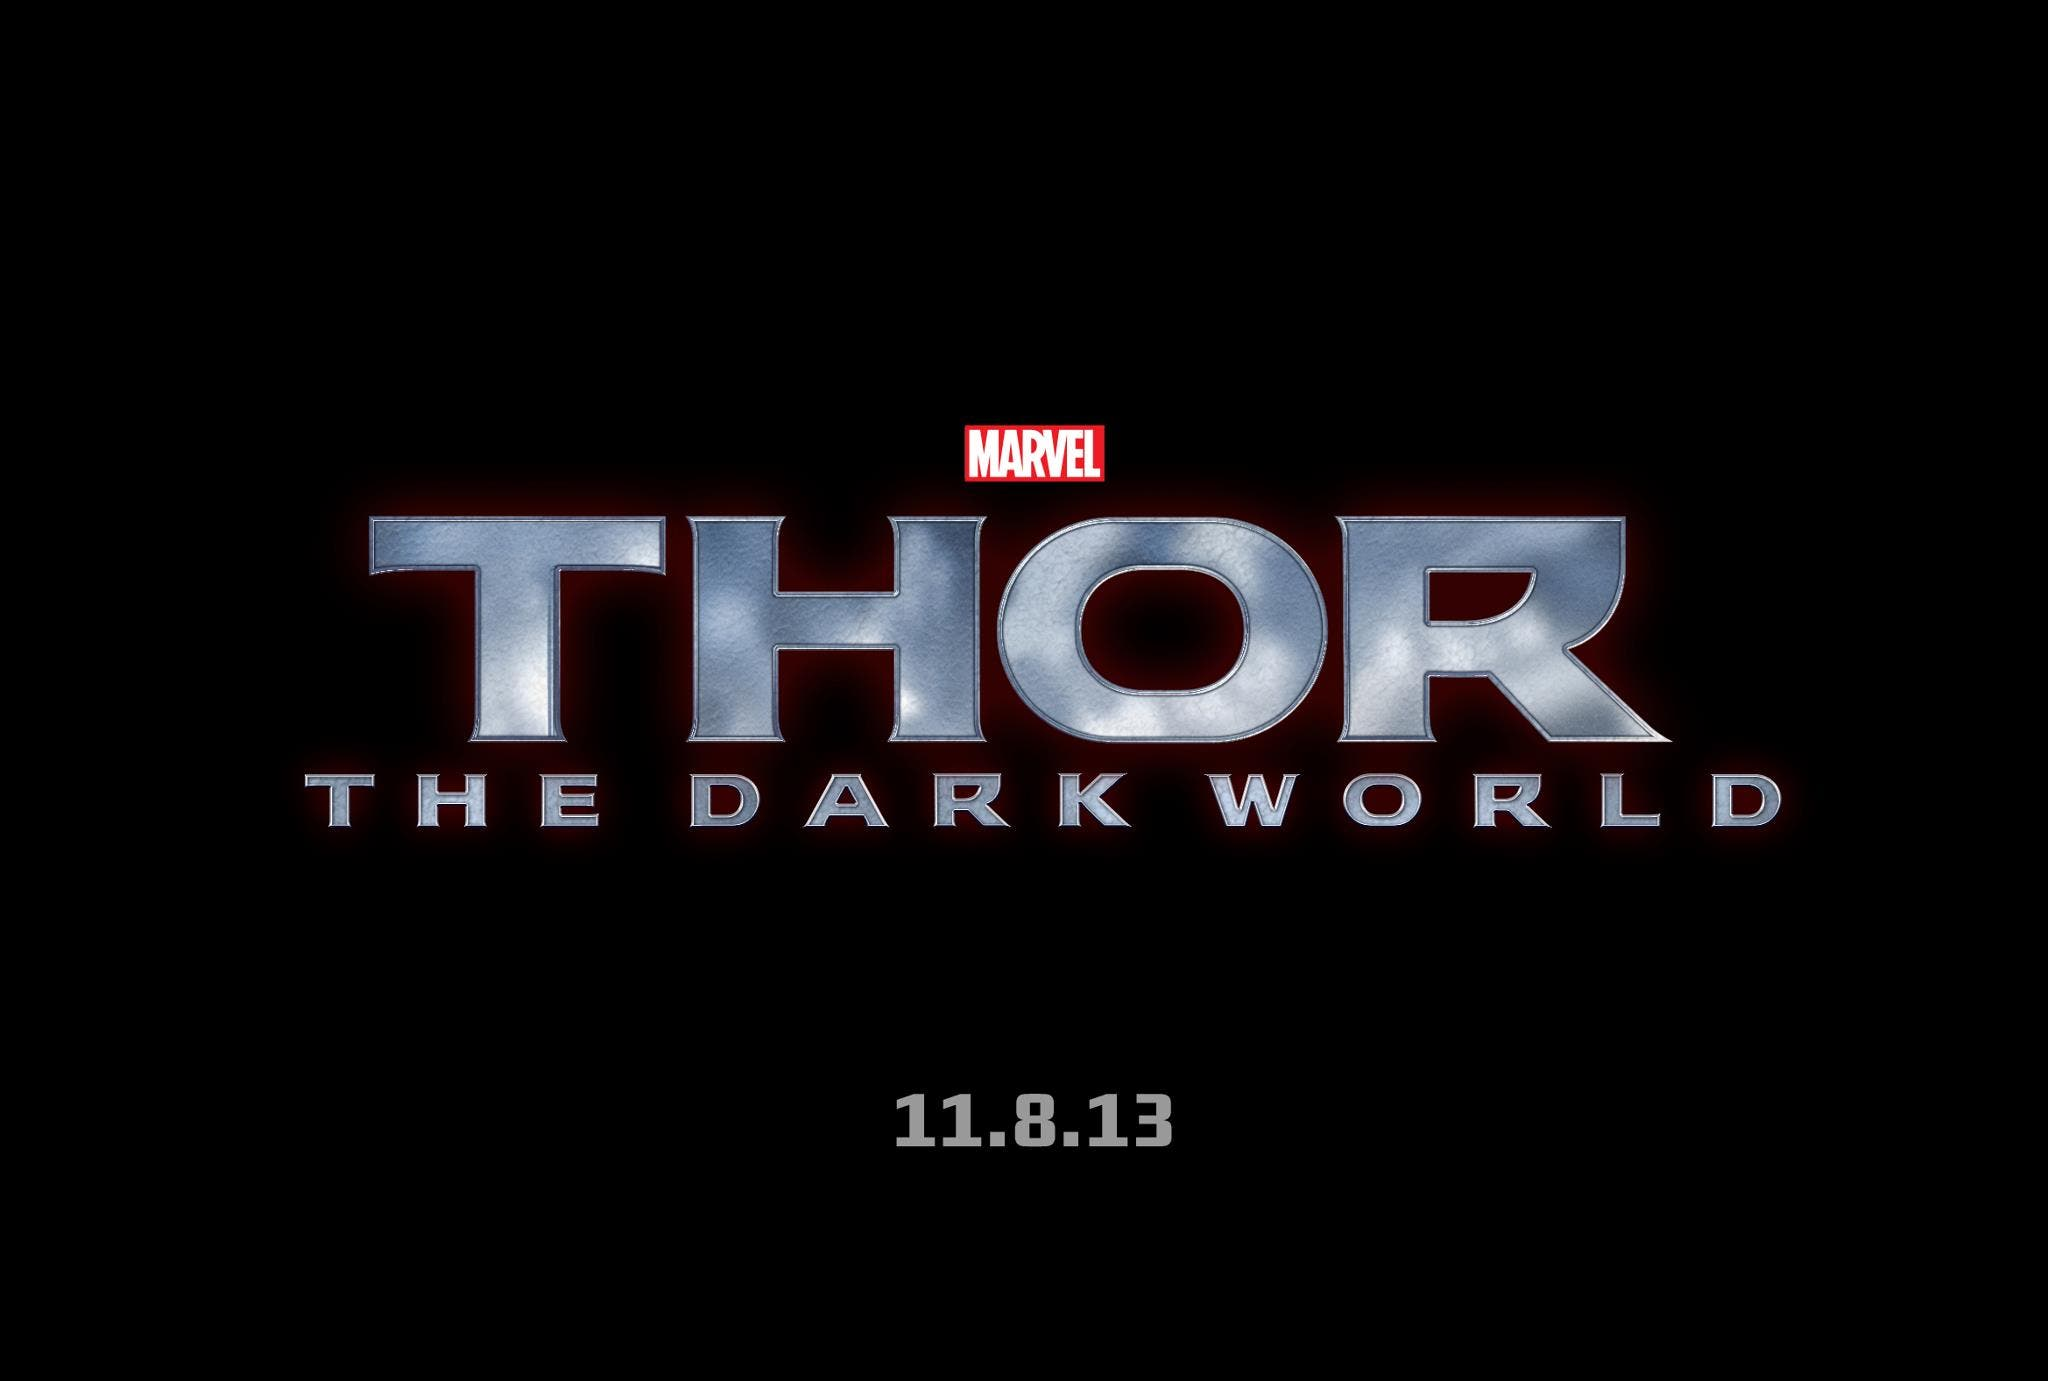 Estreno previsto por Marvel para Thor: The Dark World